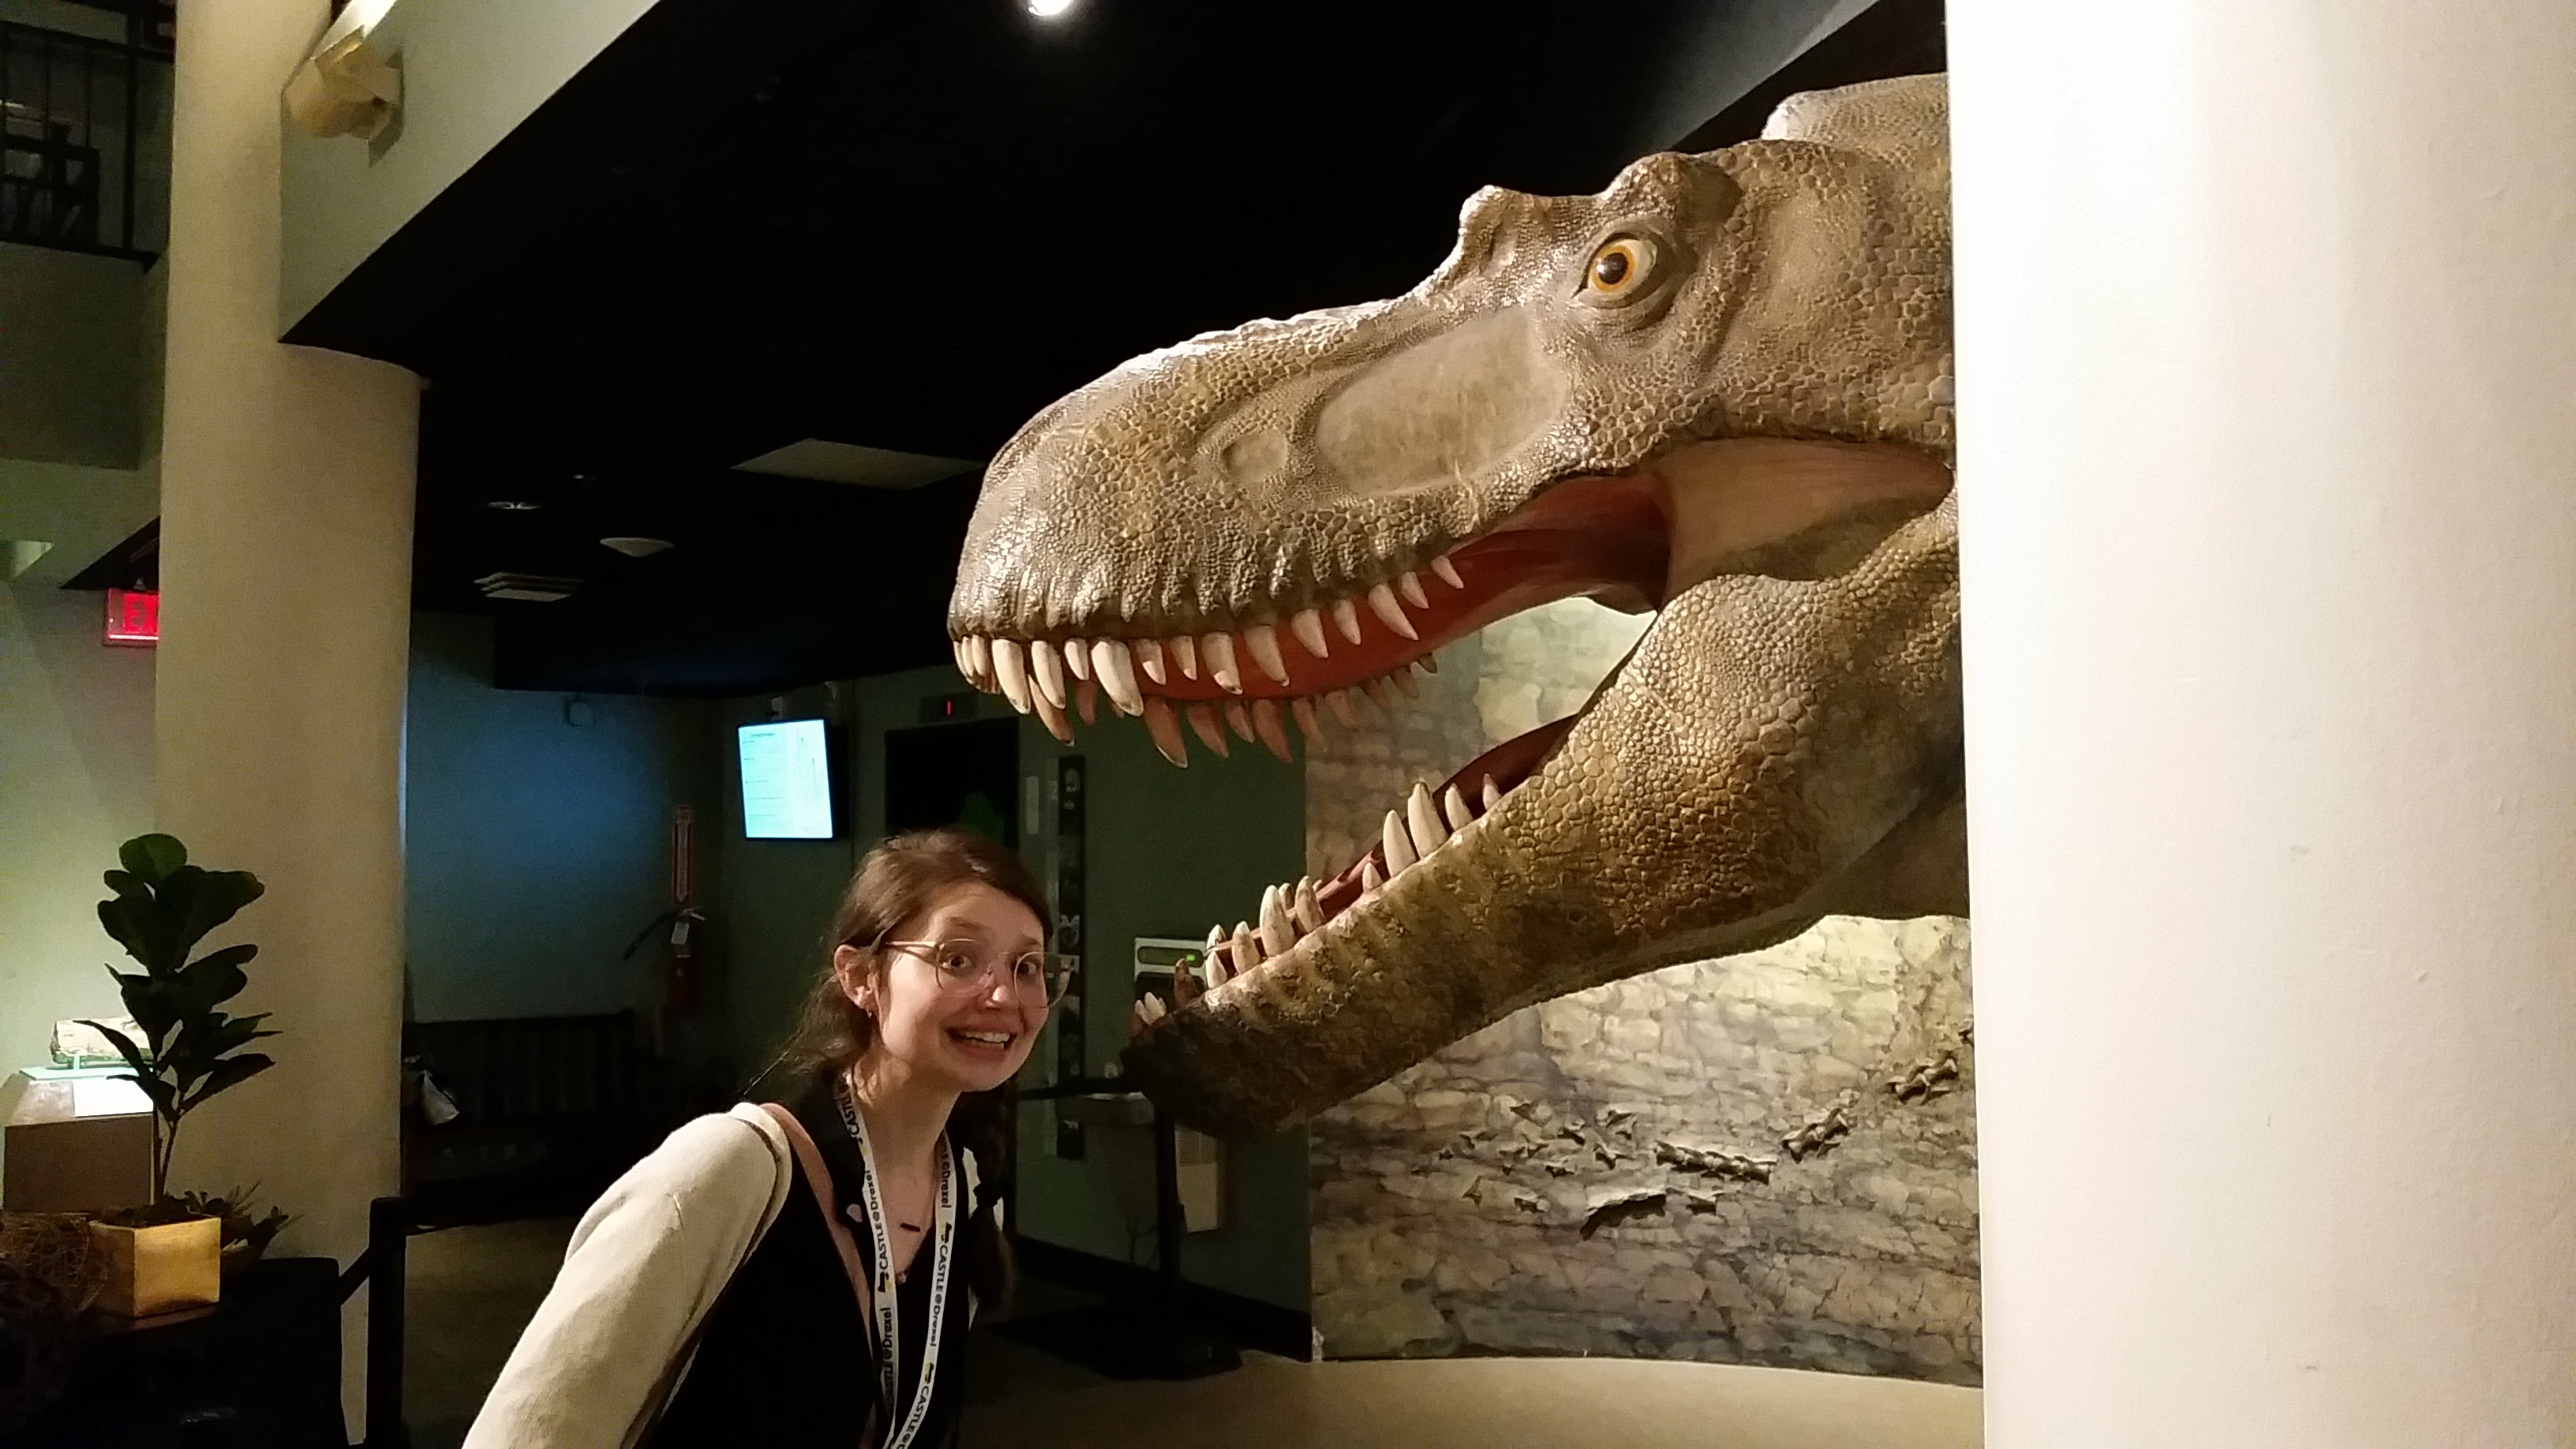 Cait standing beneath an open-mouth dinosaur model looking very scared.